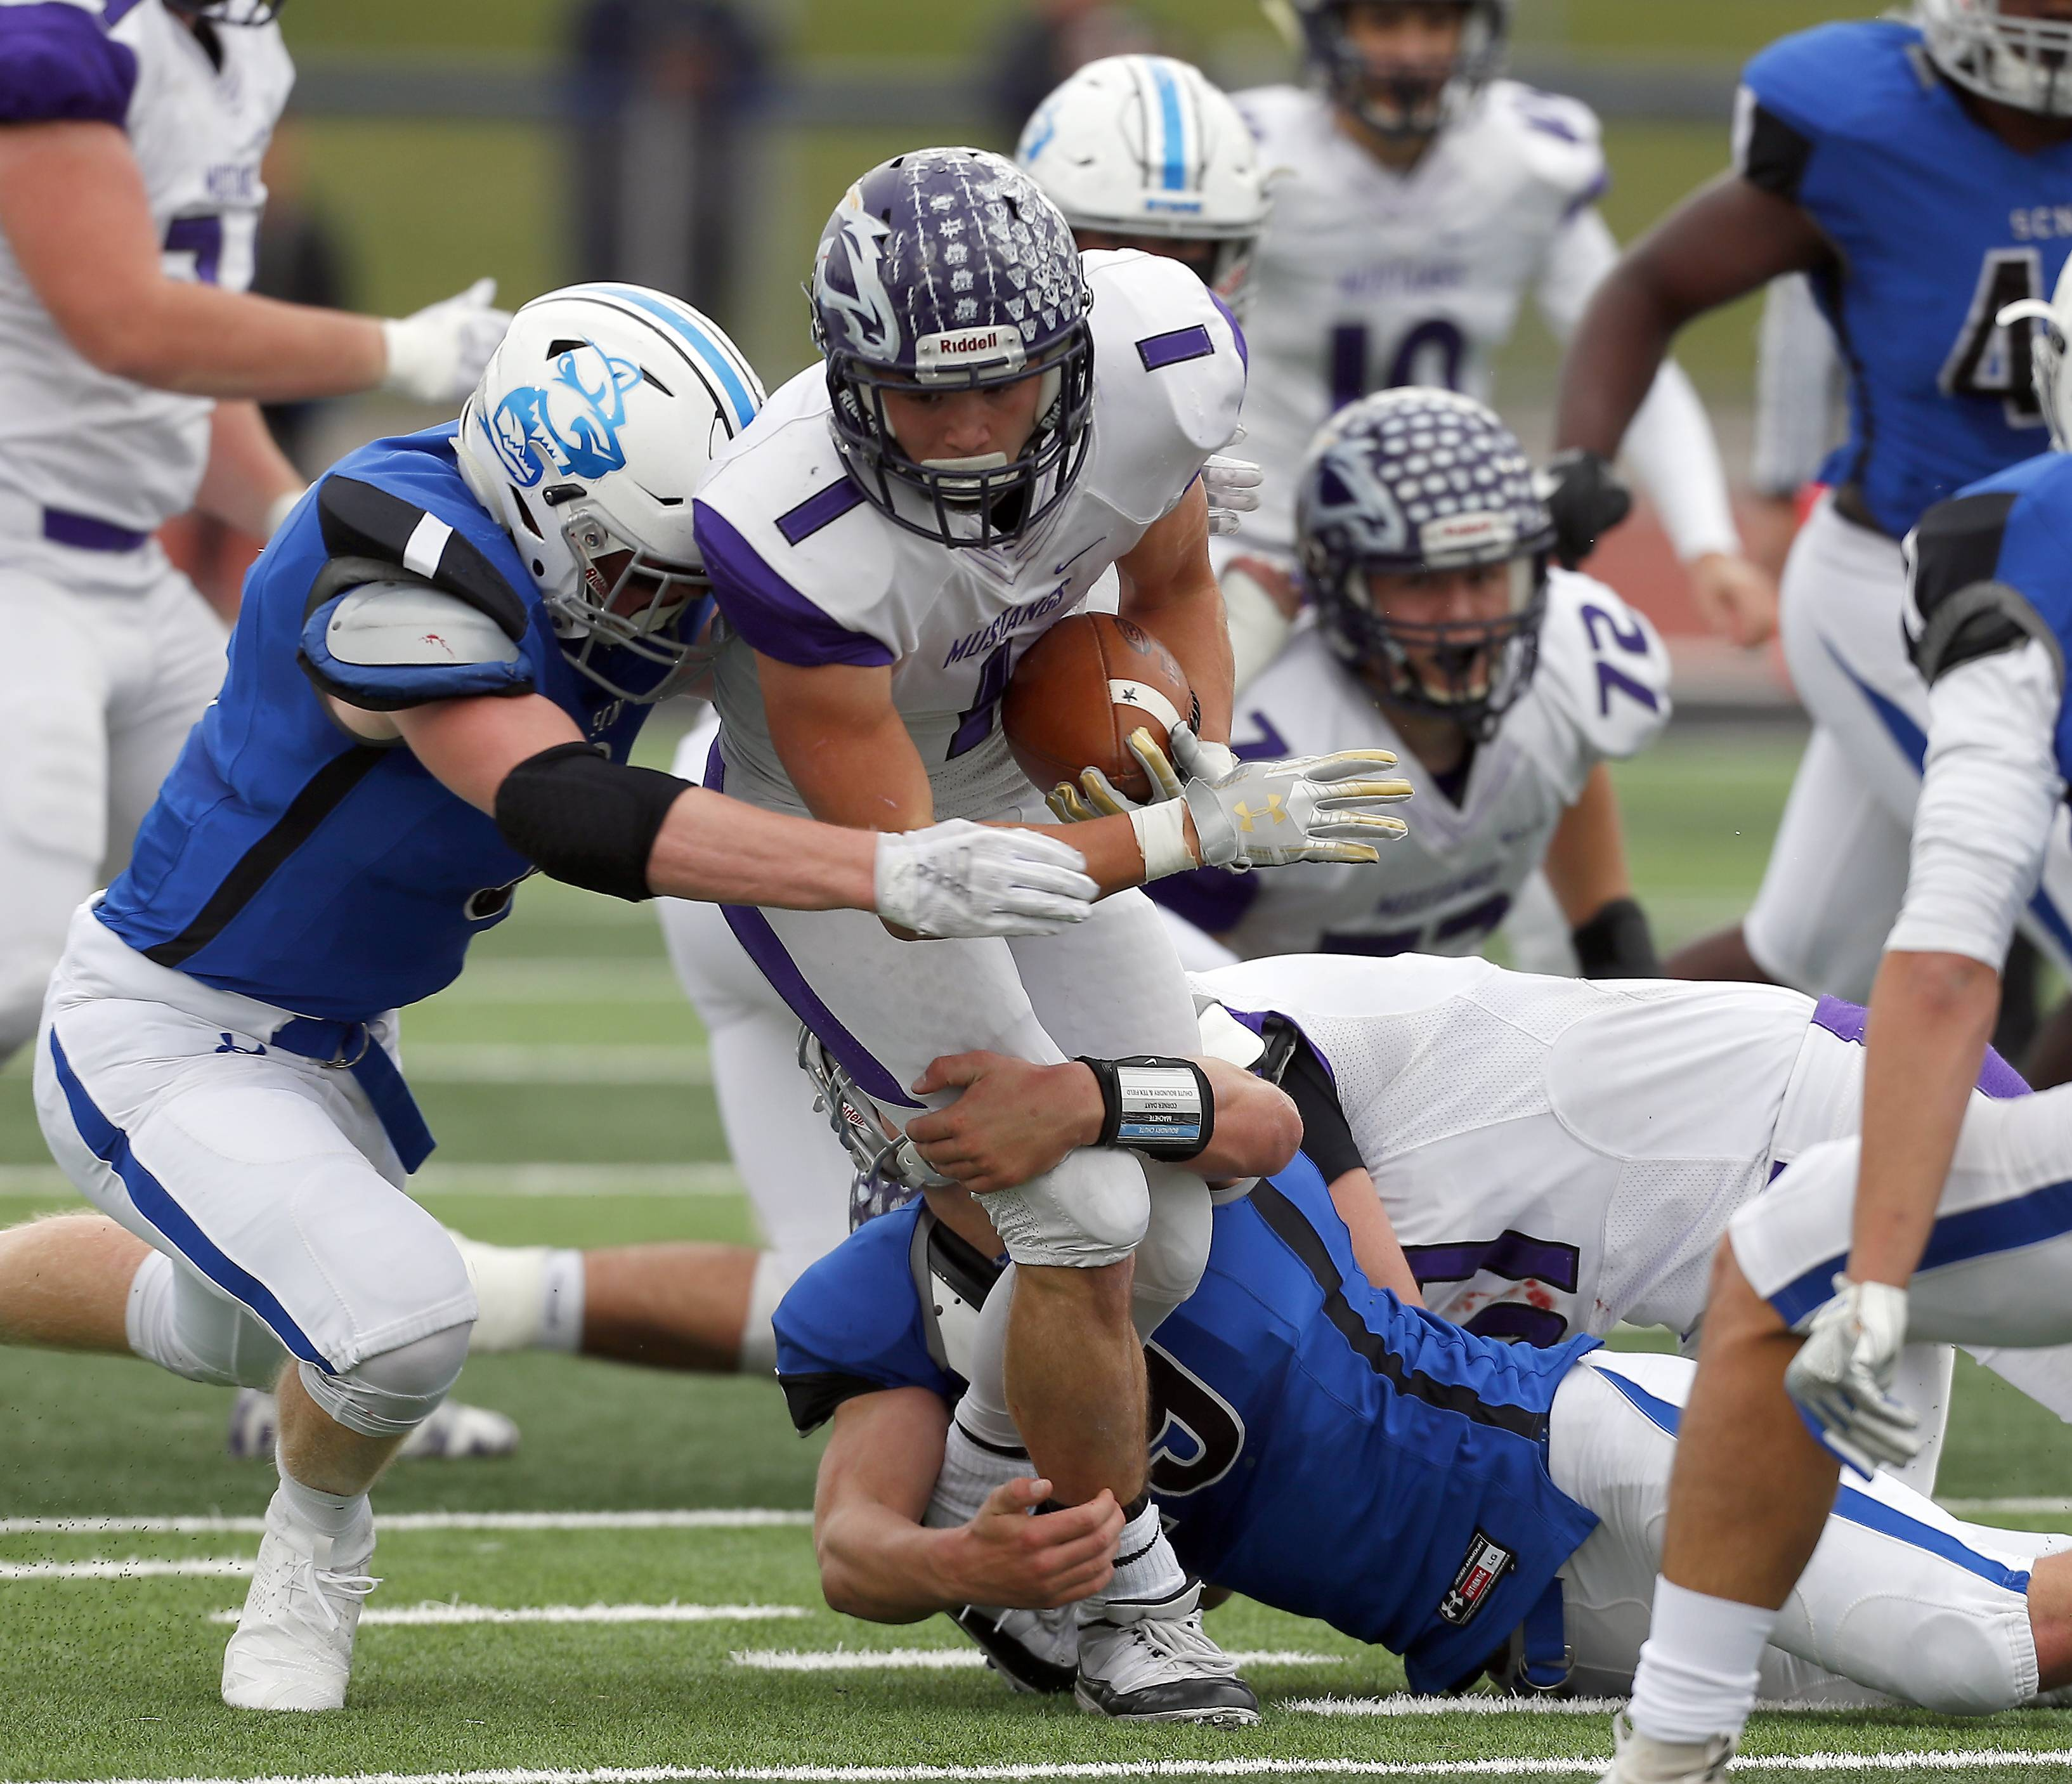 Rolling Meadows' Jace O'Hara (1) is wrapped up by some St. Charles North players Saturday during IHSA Class 7A playoff football in St. Charles.